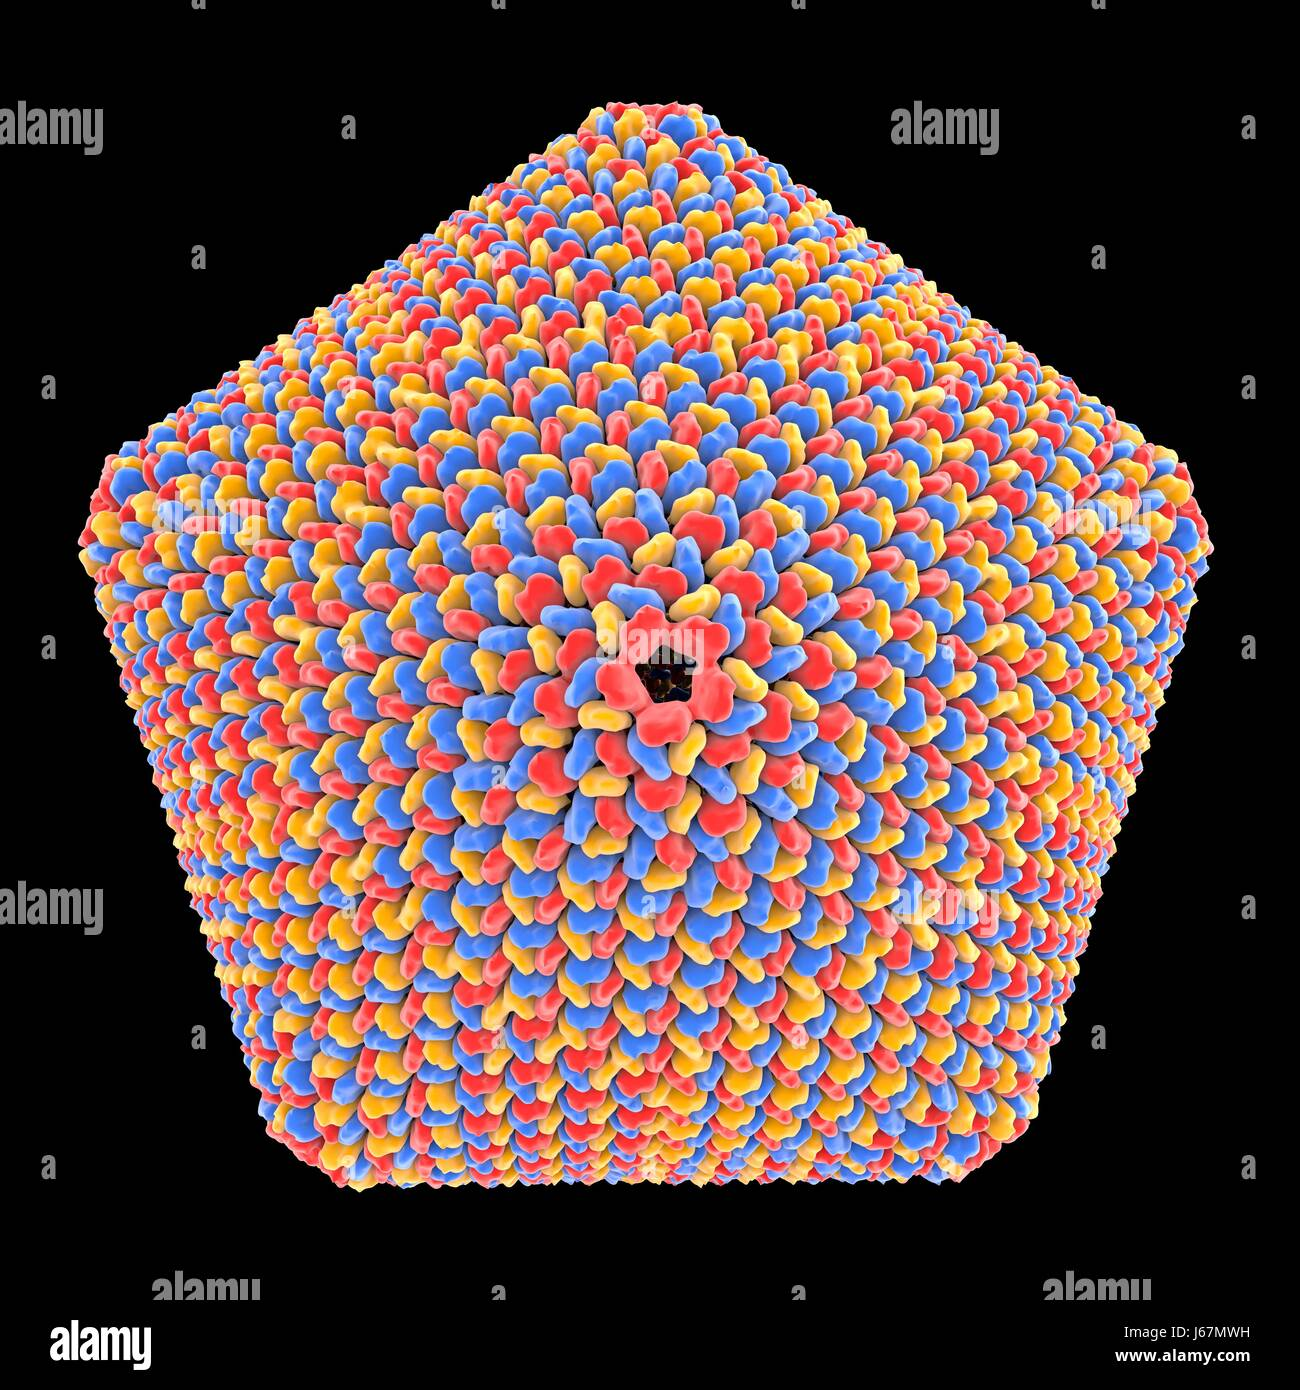 Computer artwork of an icosahedral virus capsid, derived from protein data of a minivirus, a huge icosahedral virus - Stock-Bilder